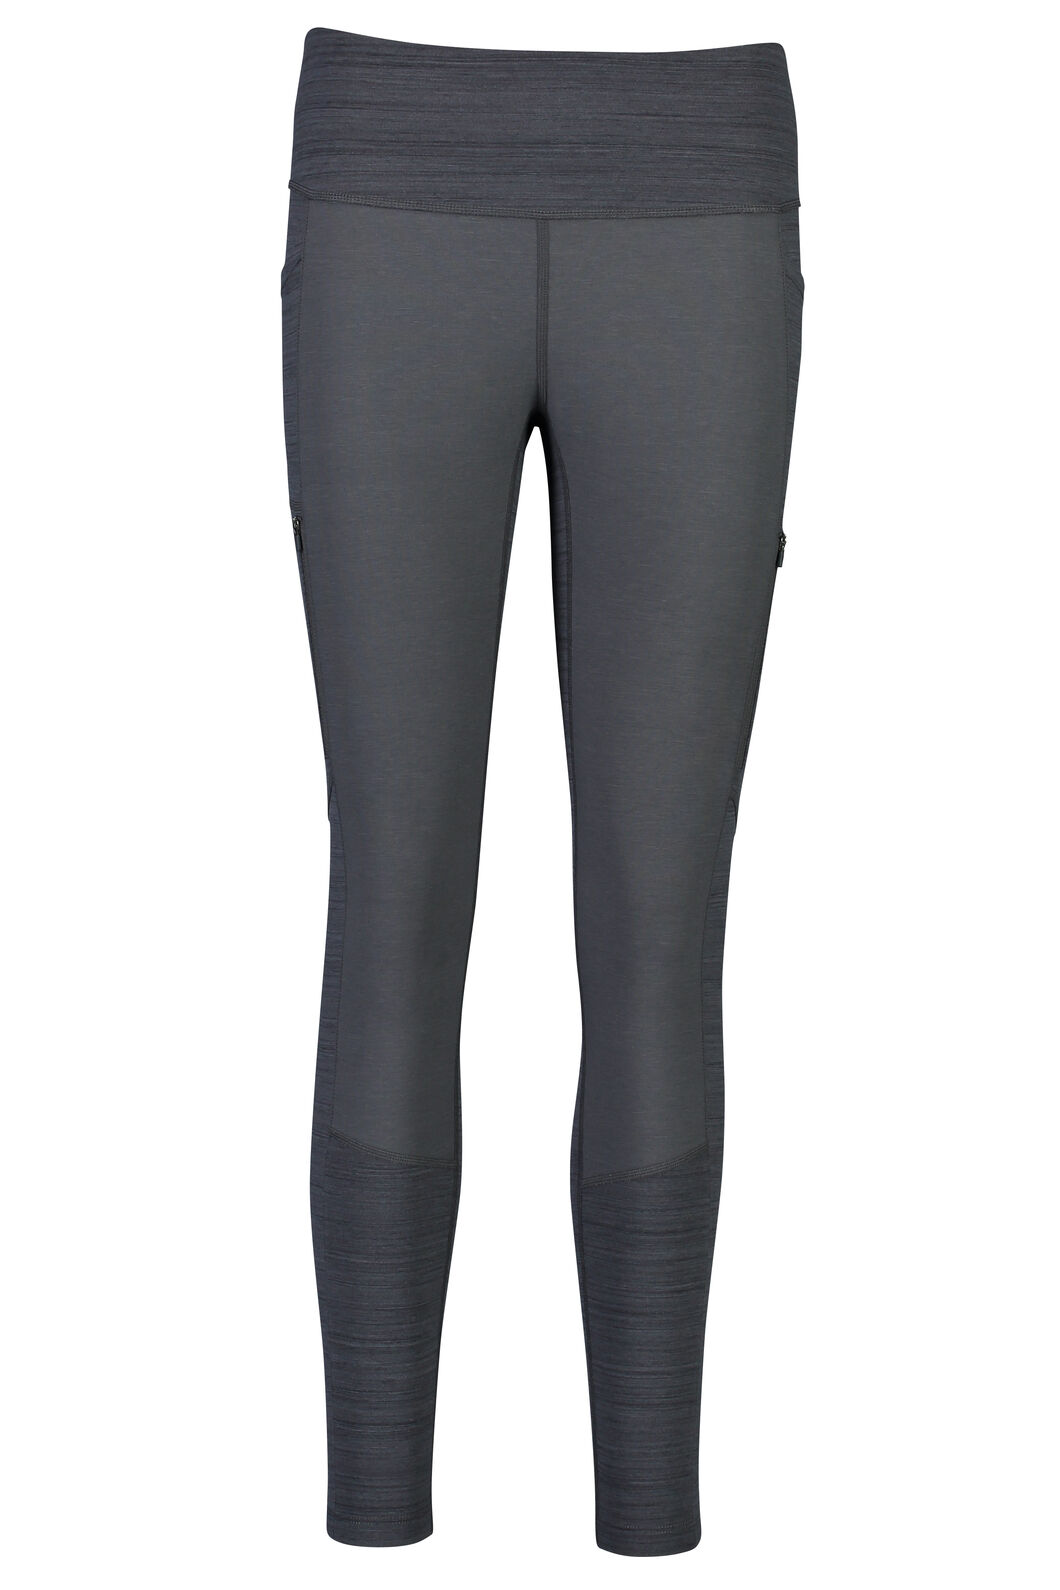 Macpac There and Back Tights -Women's, Asphalt, hi-res